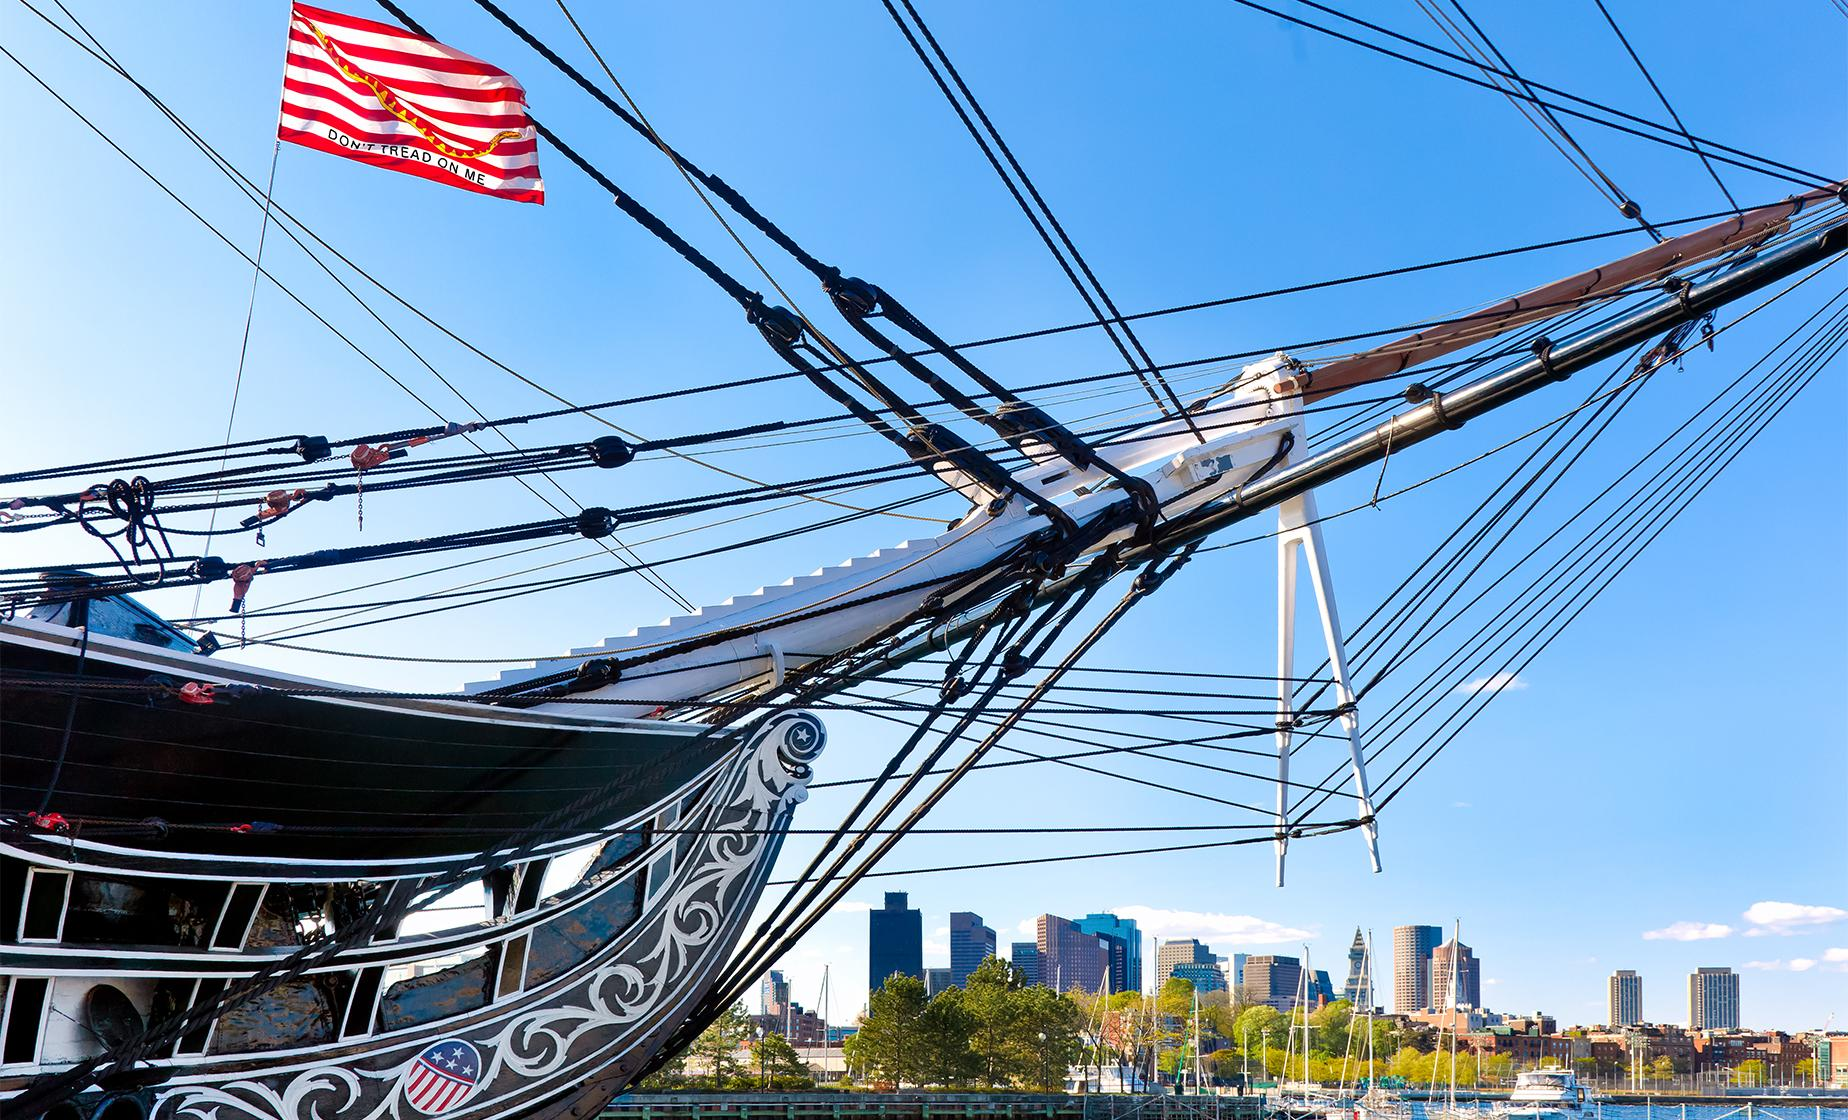 Classic Trolley, Freedom Trail and Harbor Cruise